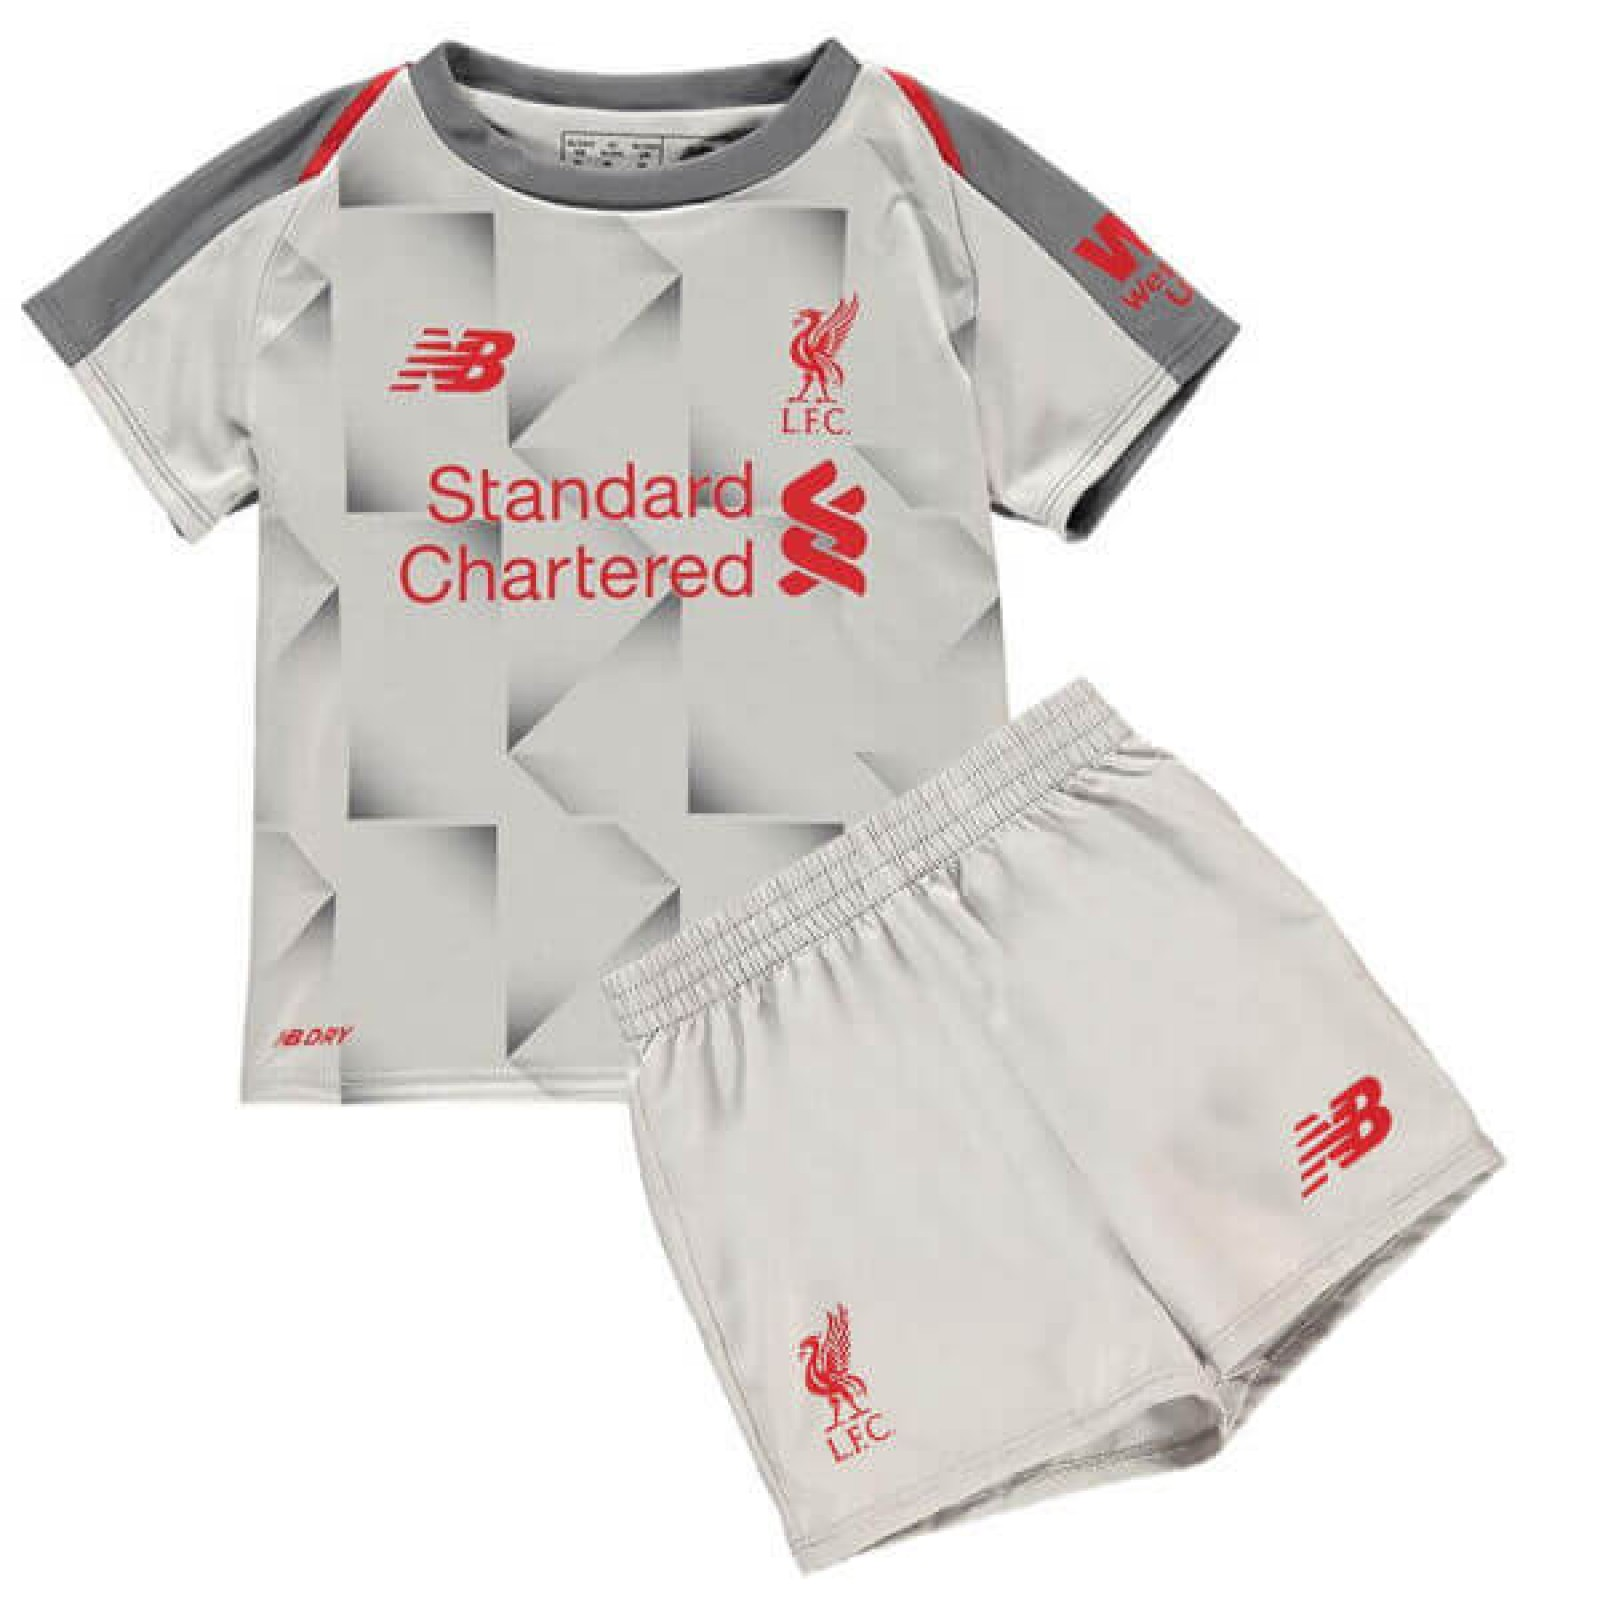 cheap for discount 05590 bddfa Childrens Liverpool Third Kit 2018/19 from £29.99 | Free ...